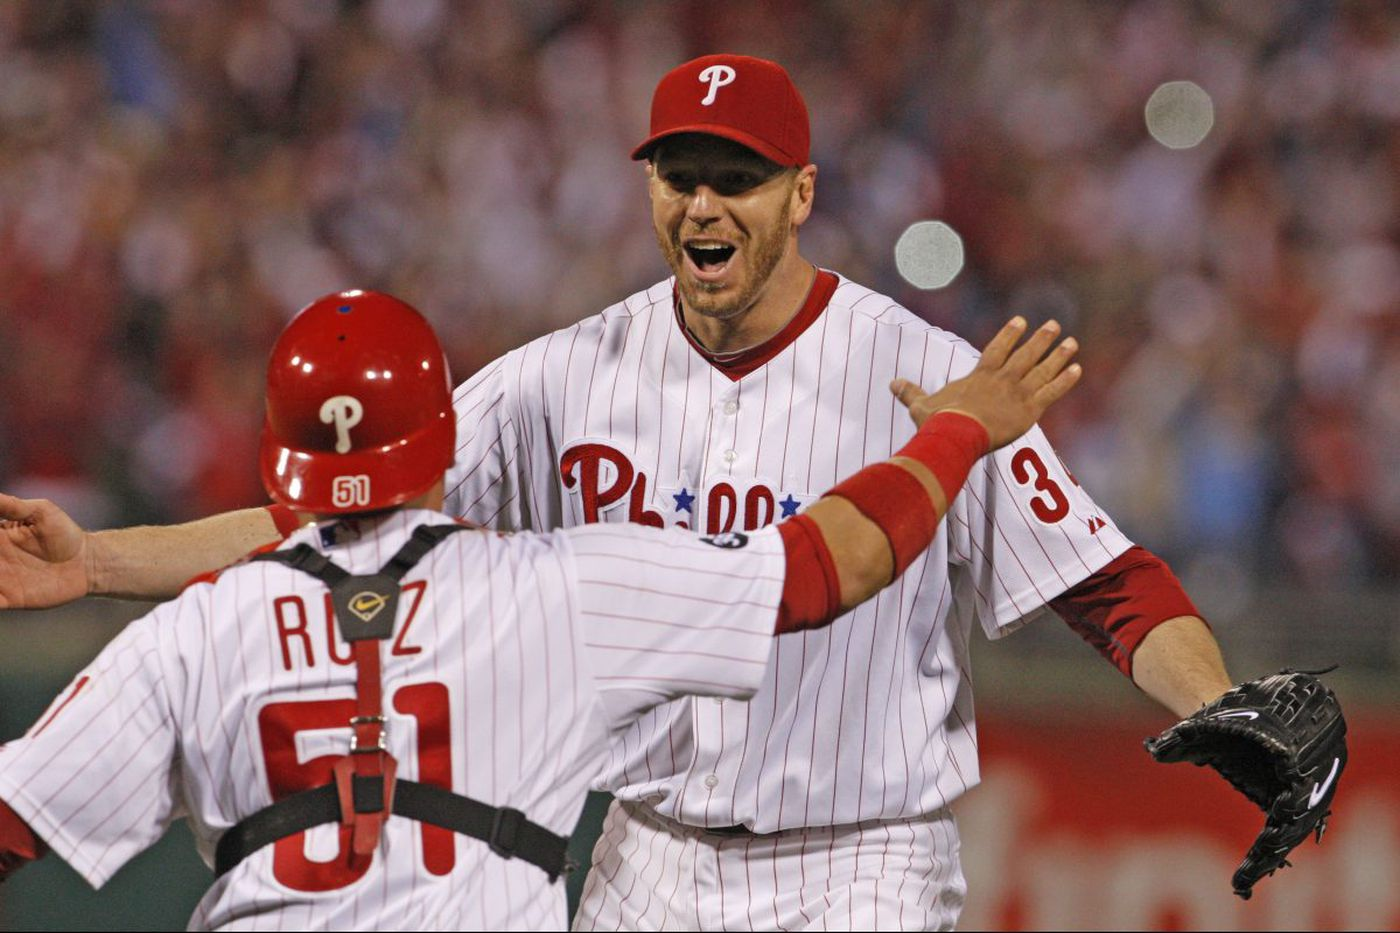 Roy Halladay's career at a glance